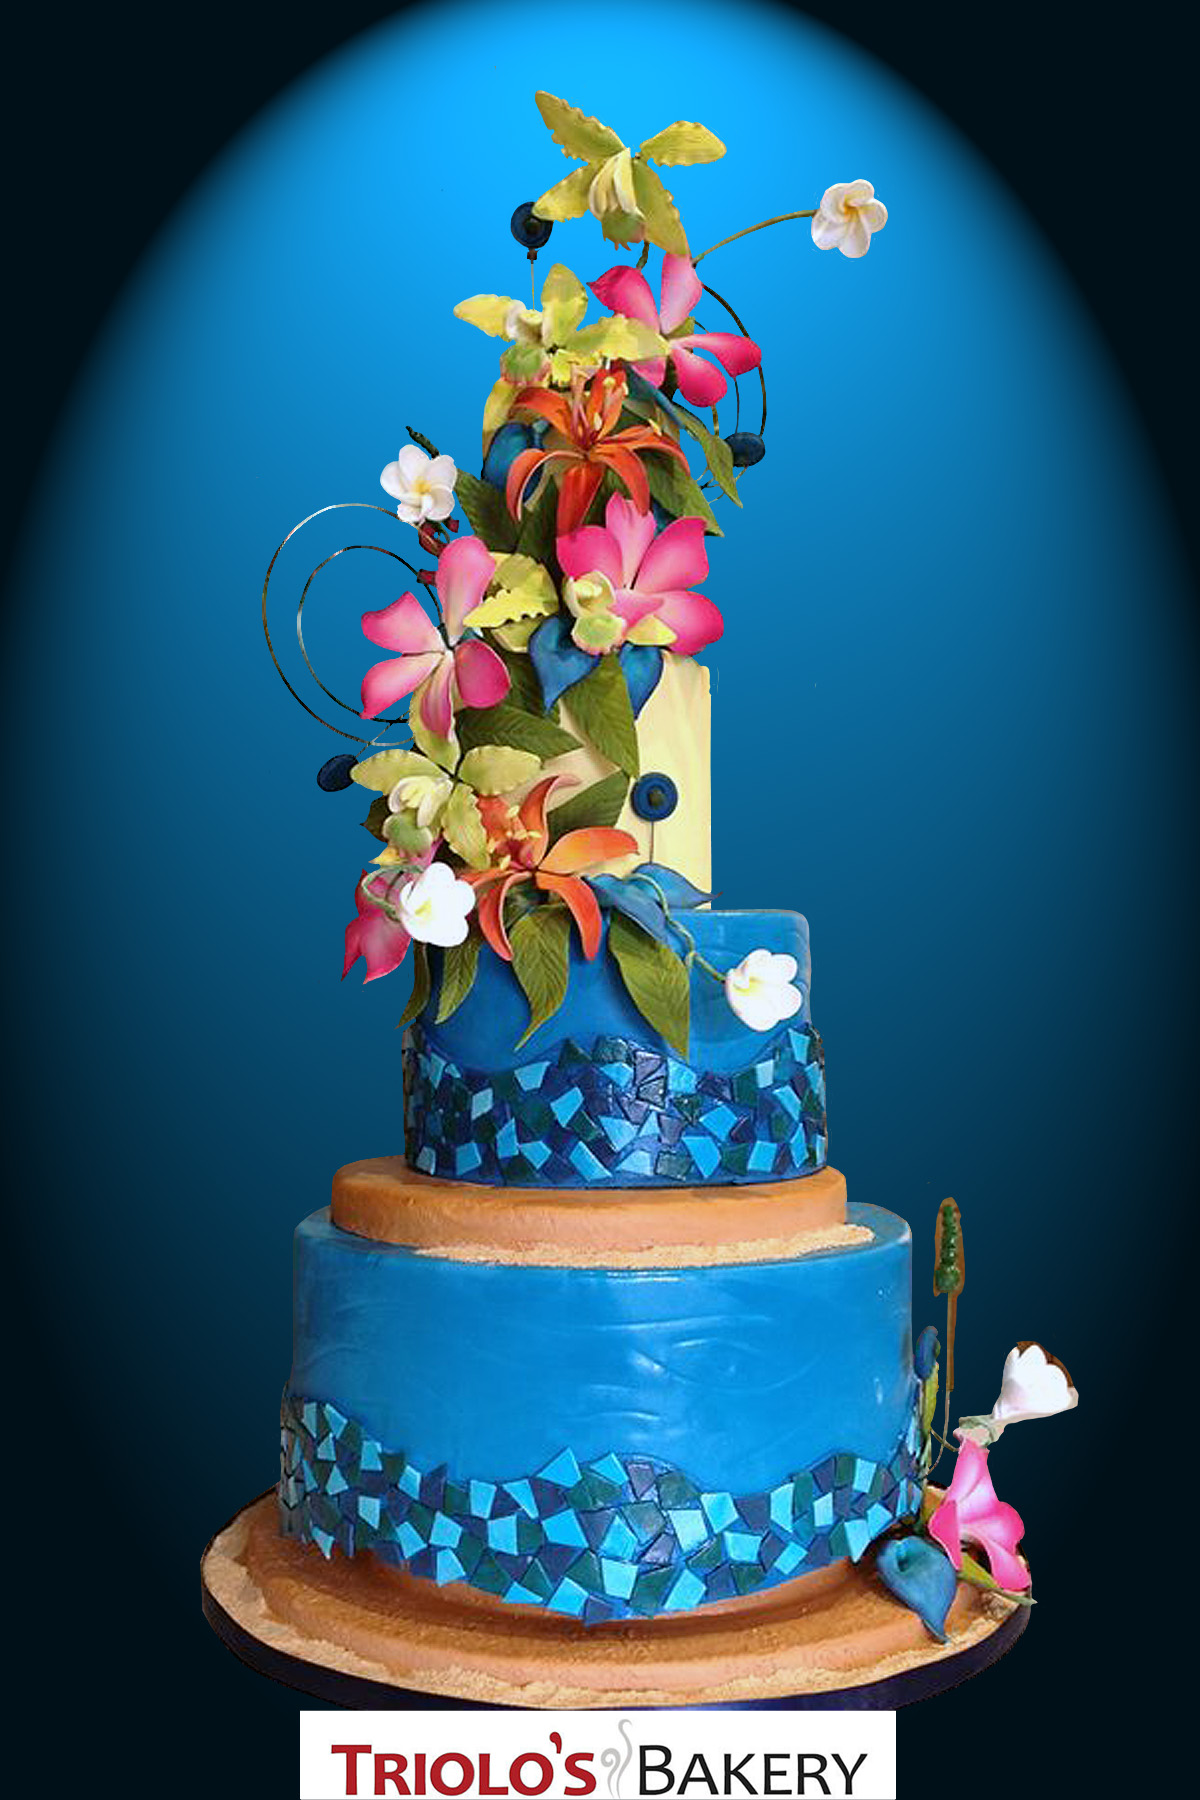 Caribbean Wedding Cake - Triolo's Bakery